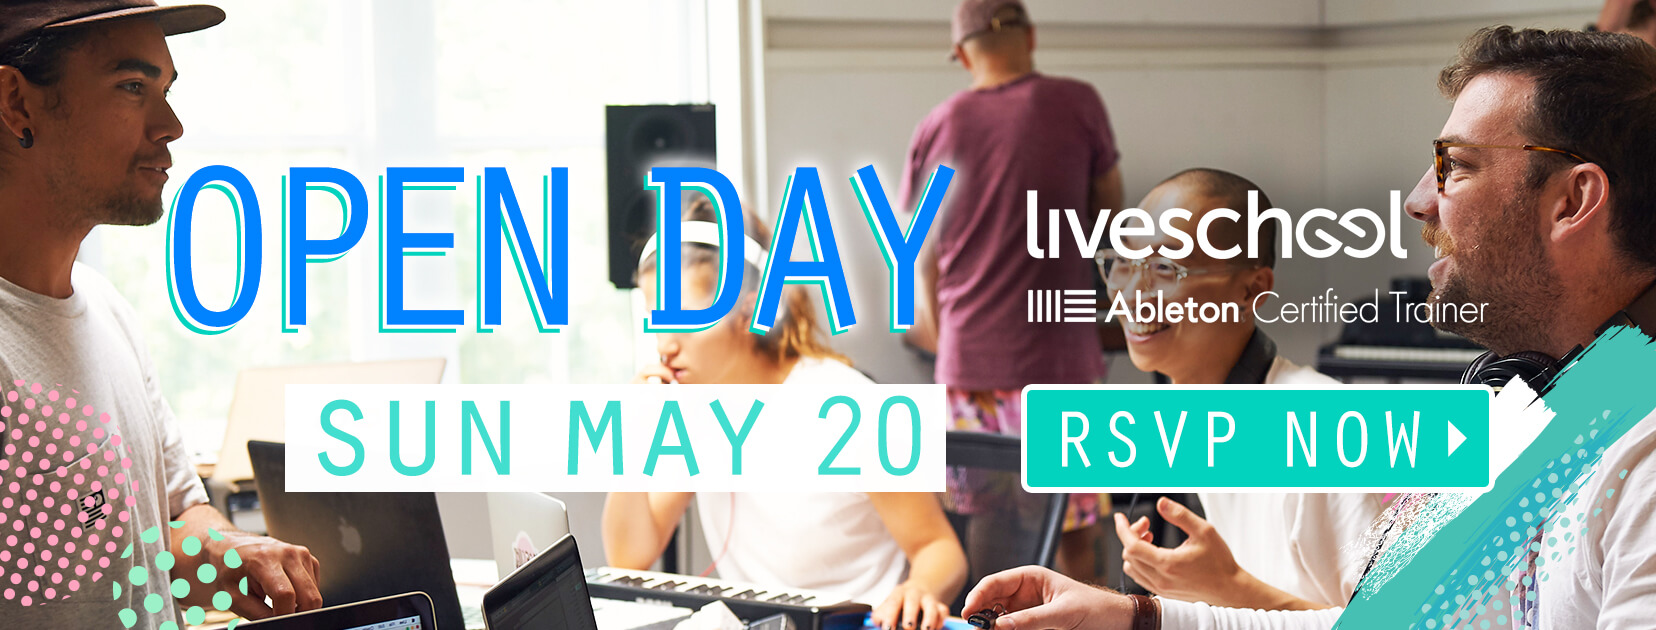 Open Day at Liveschool - May 20